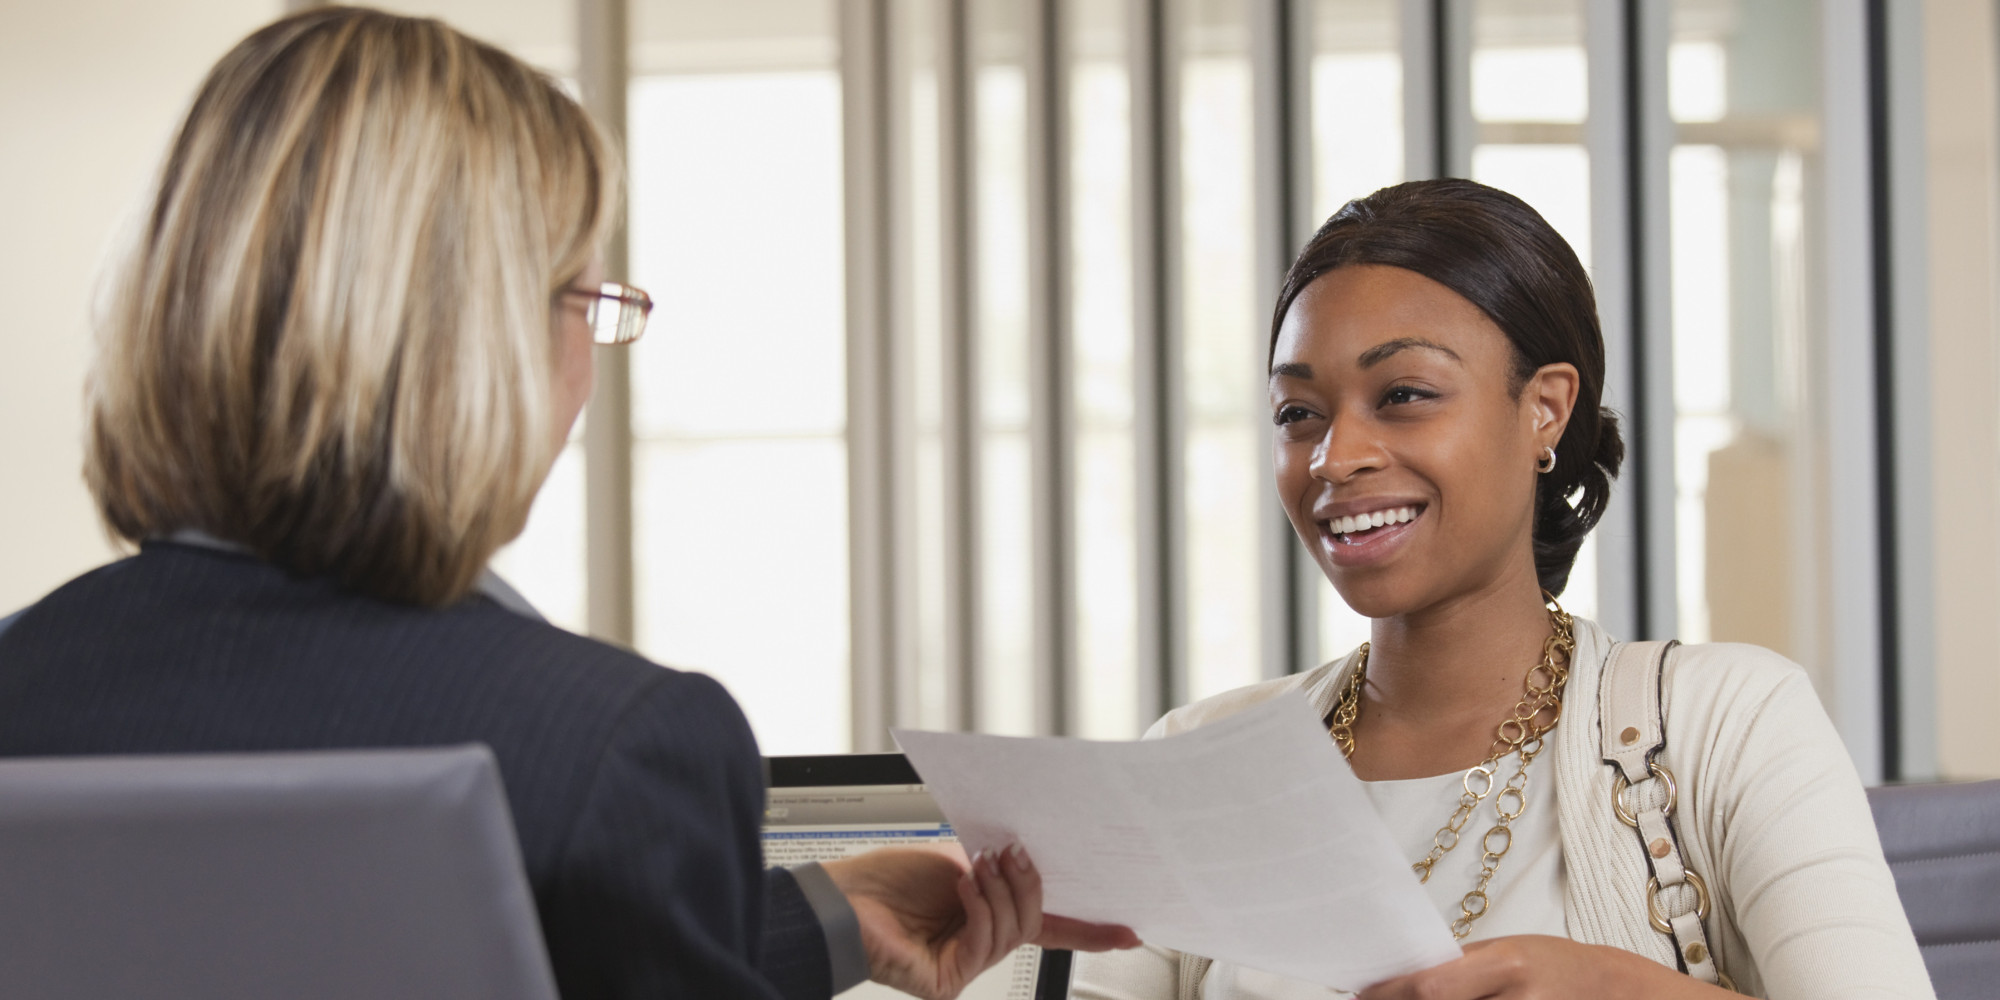 How to Update Your Resume After Being Out of Work